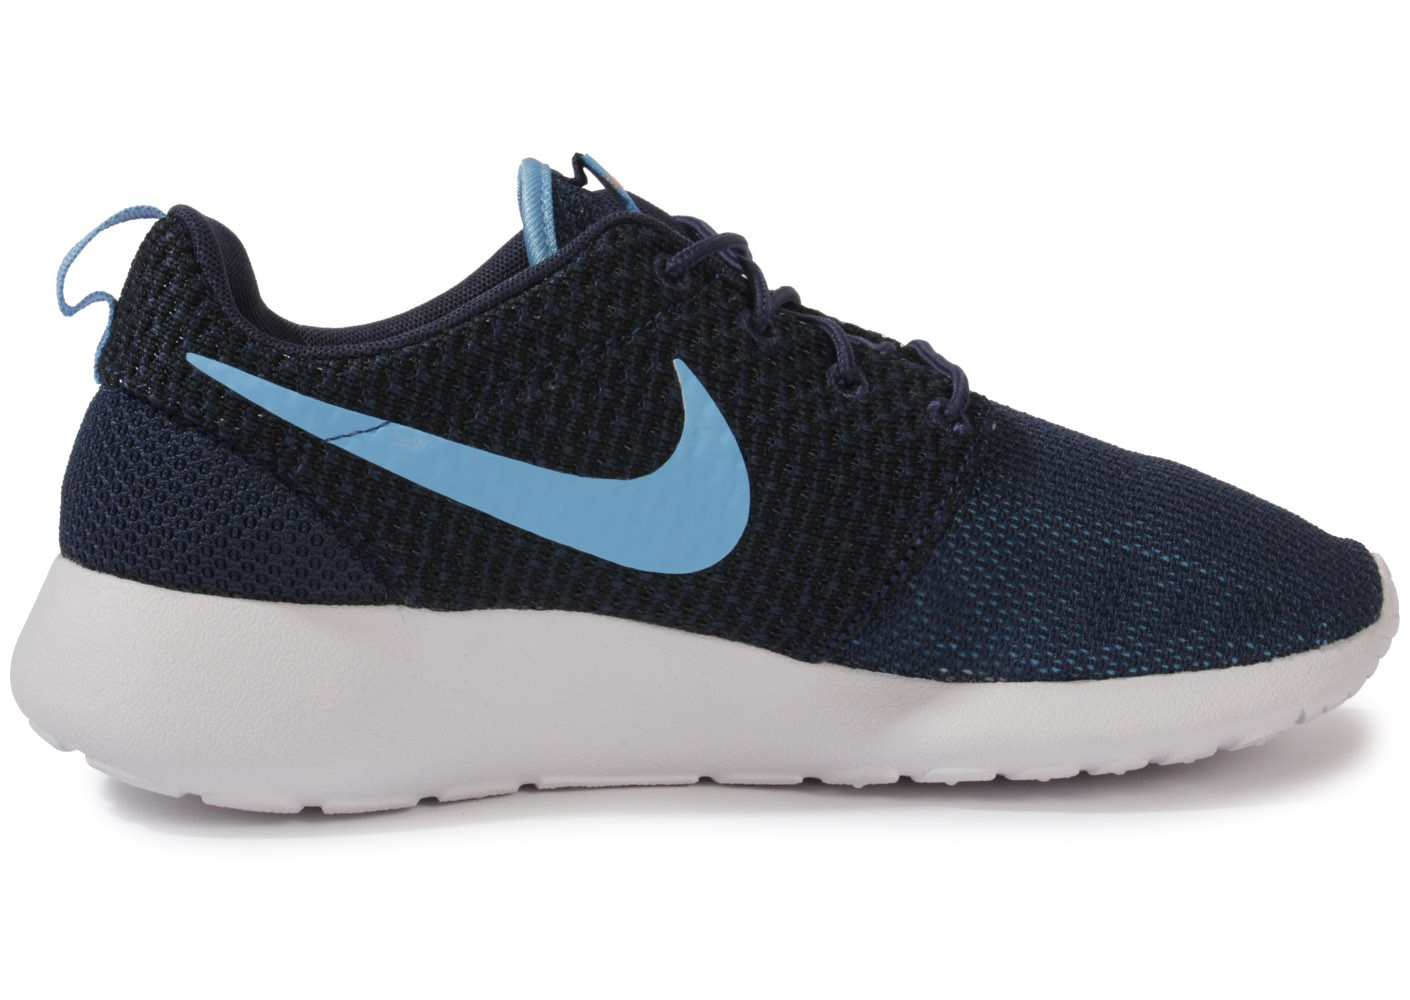 the best attitude f54eb a14f3 Nouveau Nike Roshe Run Homme Grossiste Jing668